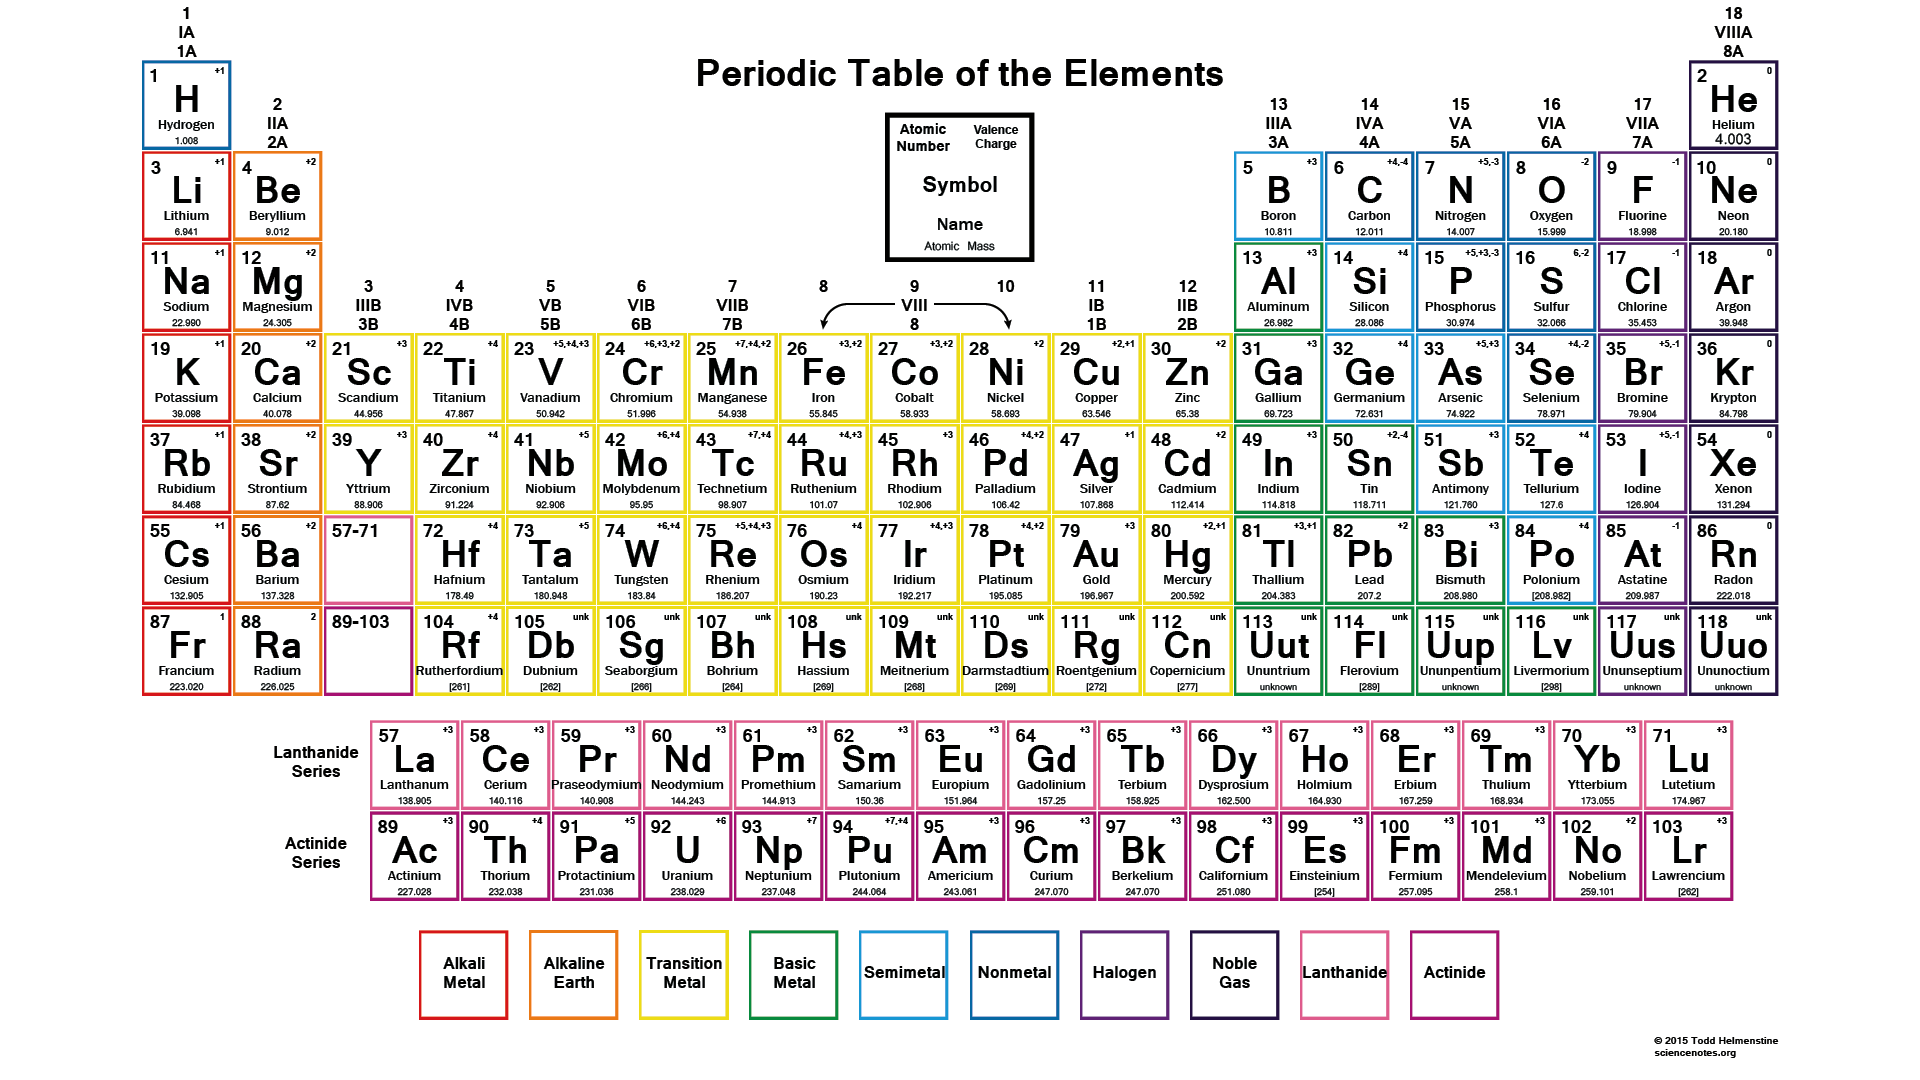 30 Printable Periodic Tables for Chemistry - Science Notes